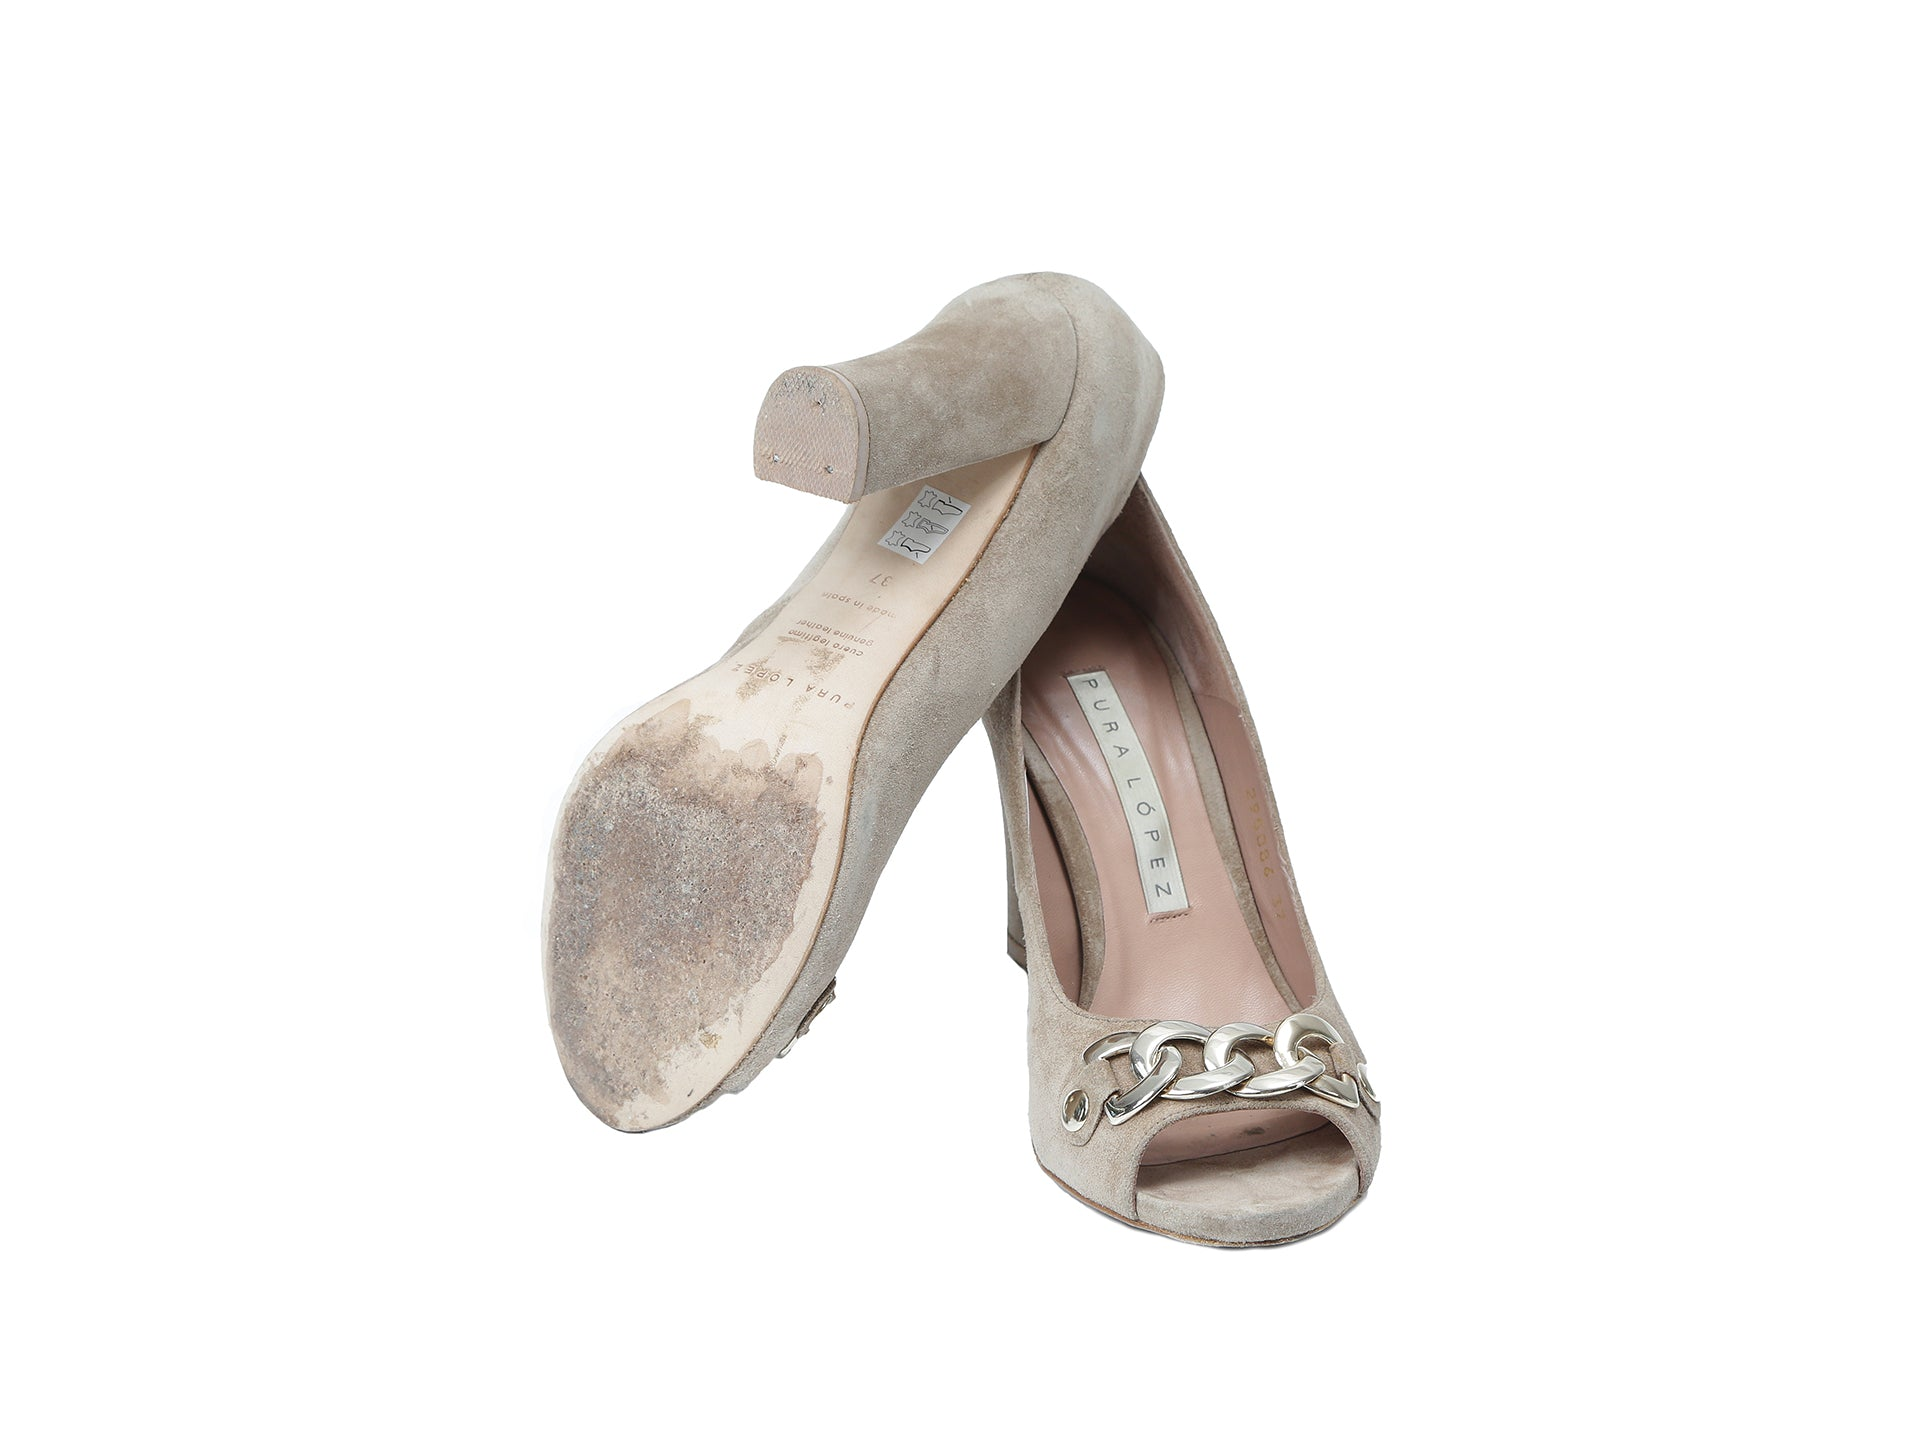 Pura Lopez Beige Suede Heels with Golden Chain Size 37 (EU)